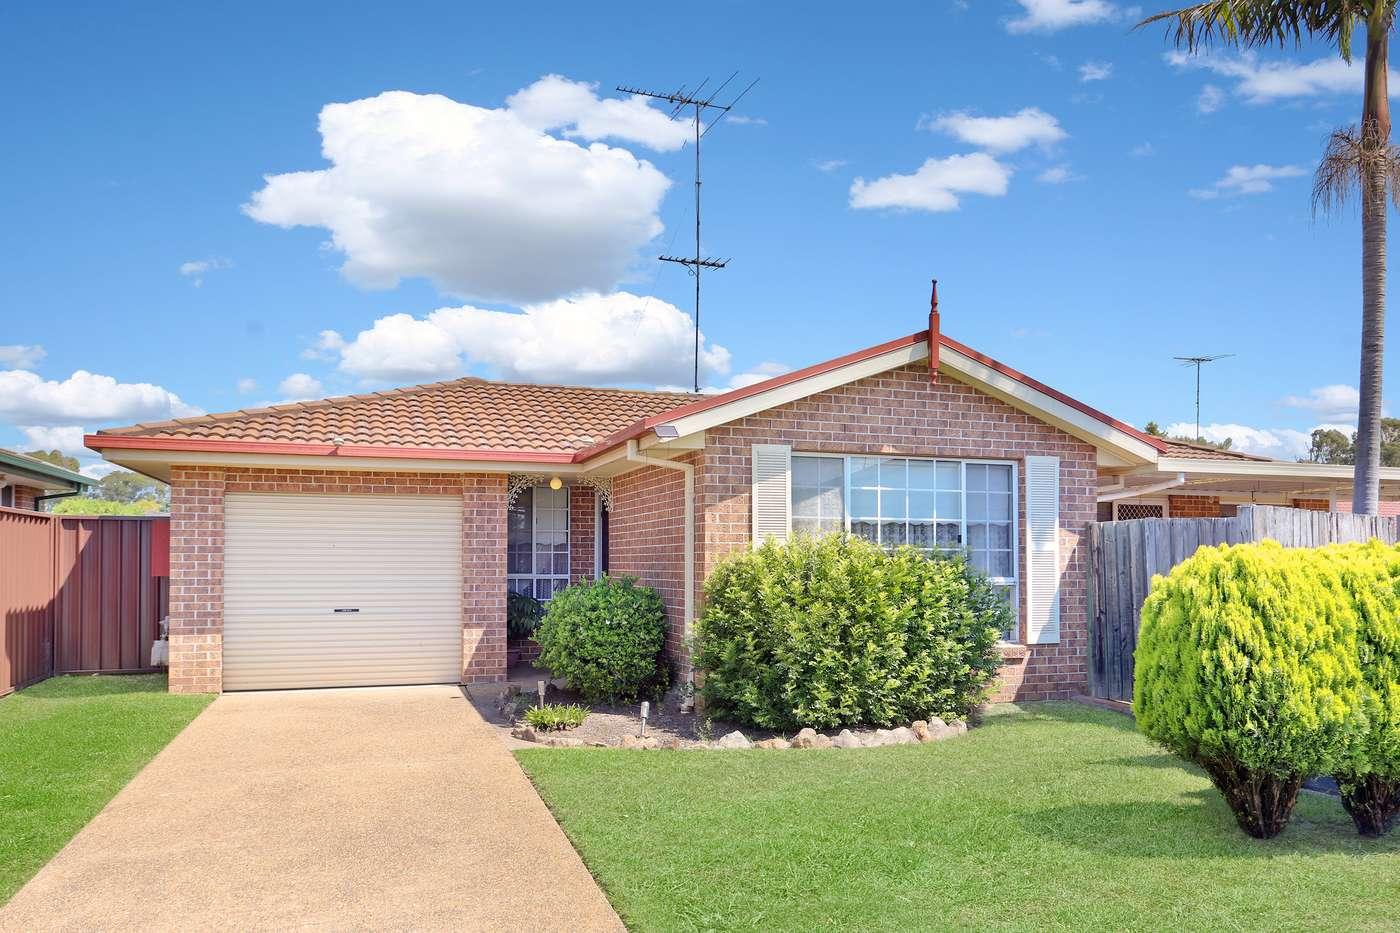 Main view of Homely house listing, 5 Hera Place, St Clair, NSW 2759